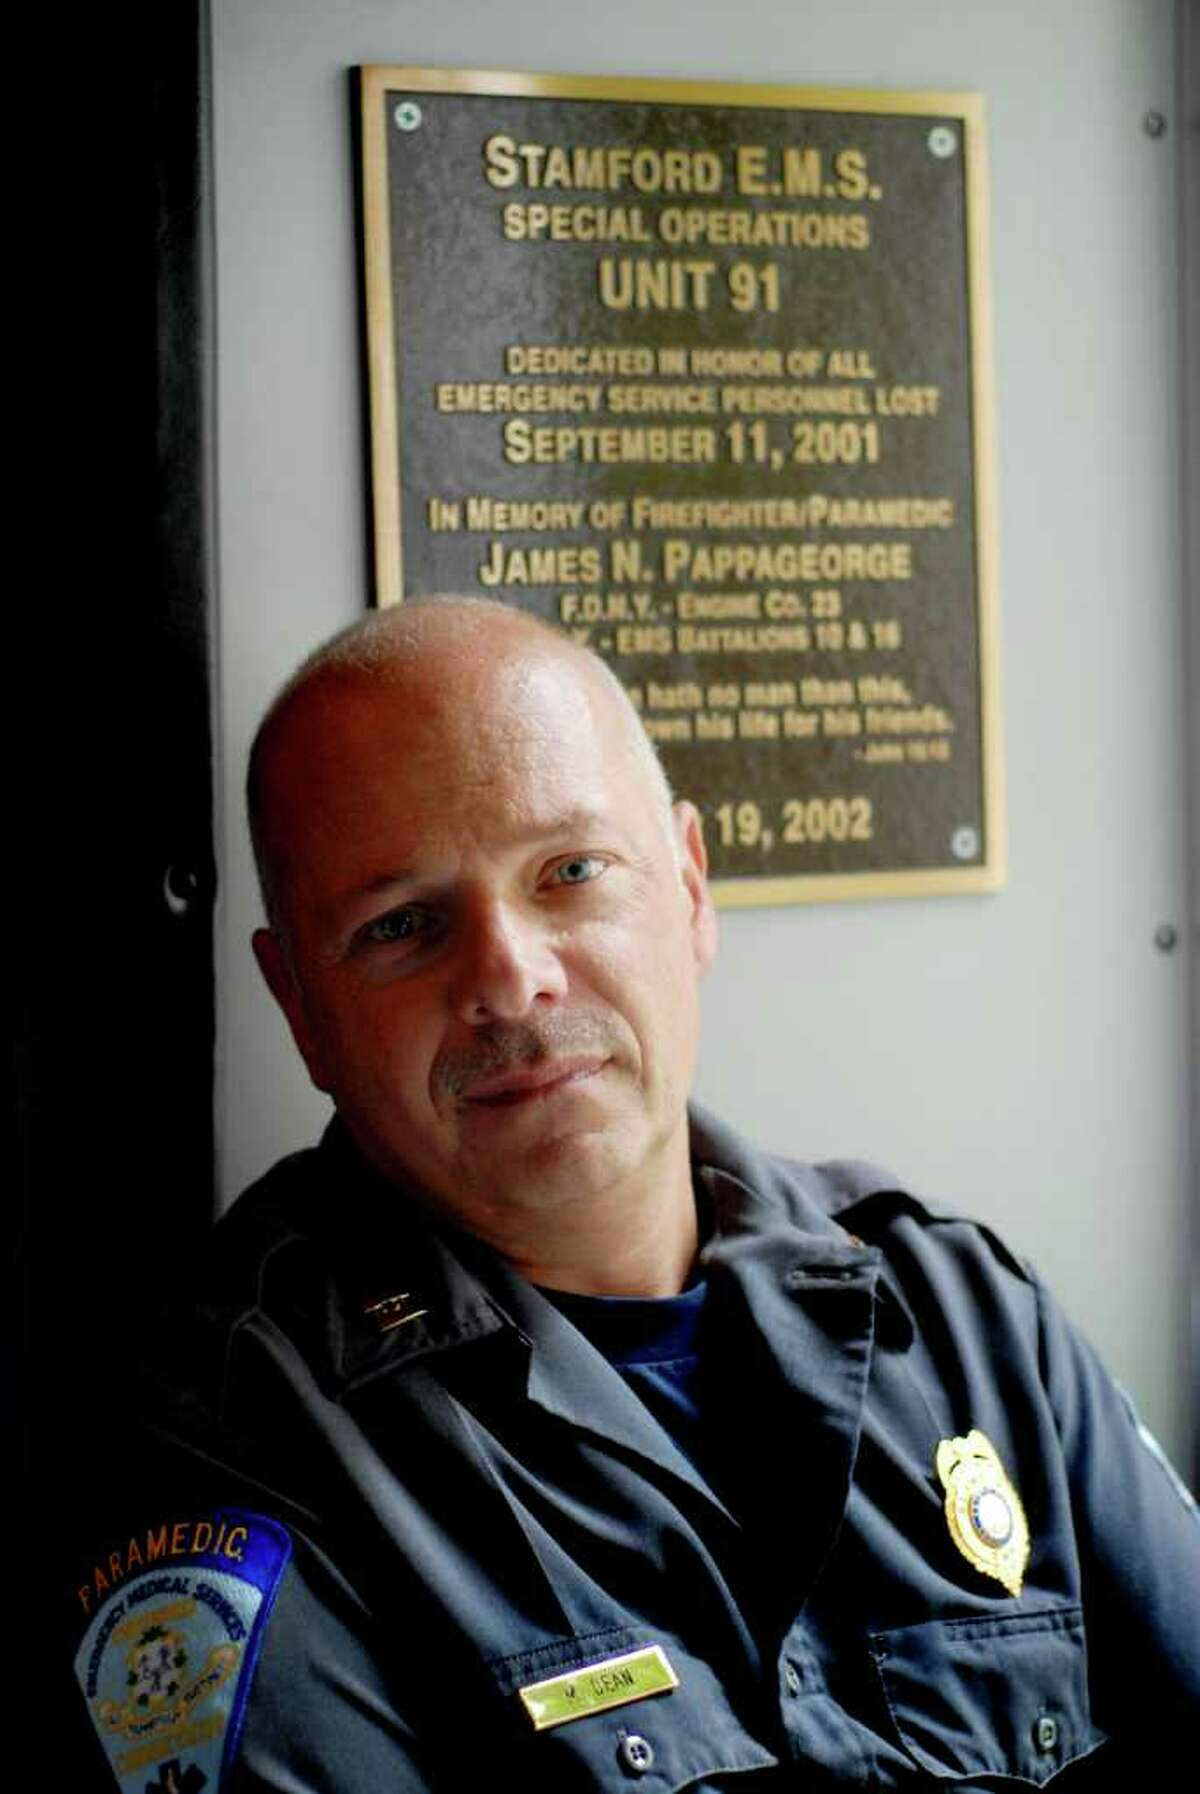 Capt. Malcom Dean is a Stamford, Conn. EMS paramedic who was working as a New York City ambulance corps and responded to the World Trade Center on September 11, 2001. His brother worked on one of the top floors of one of the Twin Towers, and while Dean was able to escape from the tower collapse, his brother died. Dean is photographed on Monday September 5, 2011.